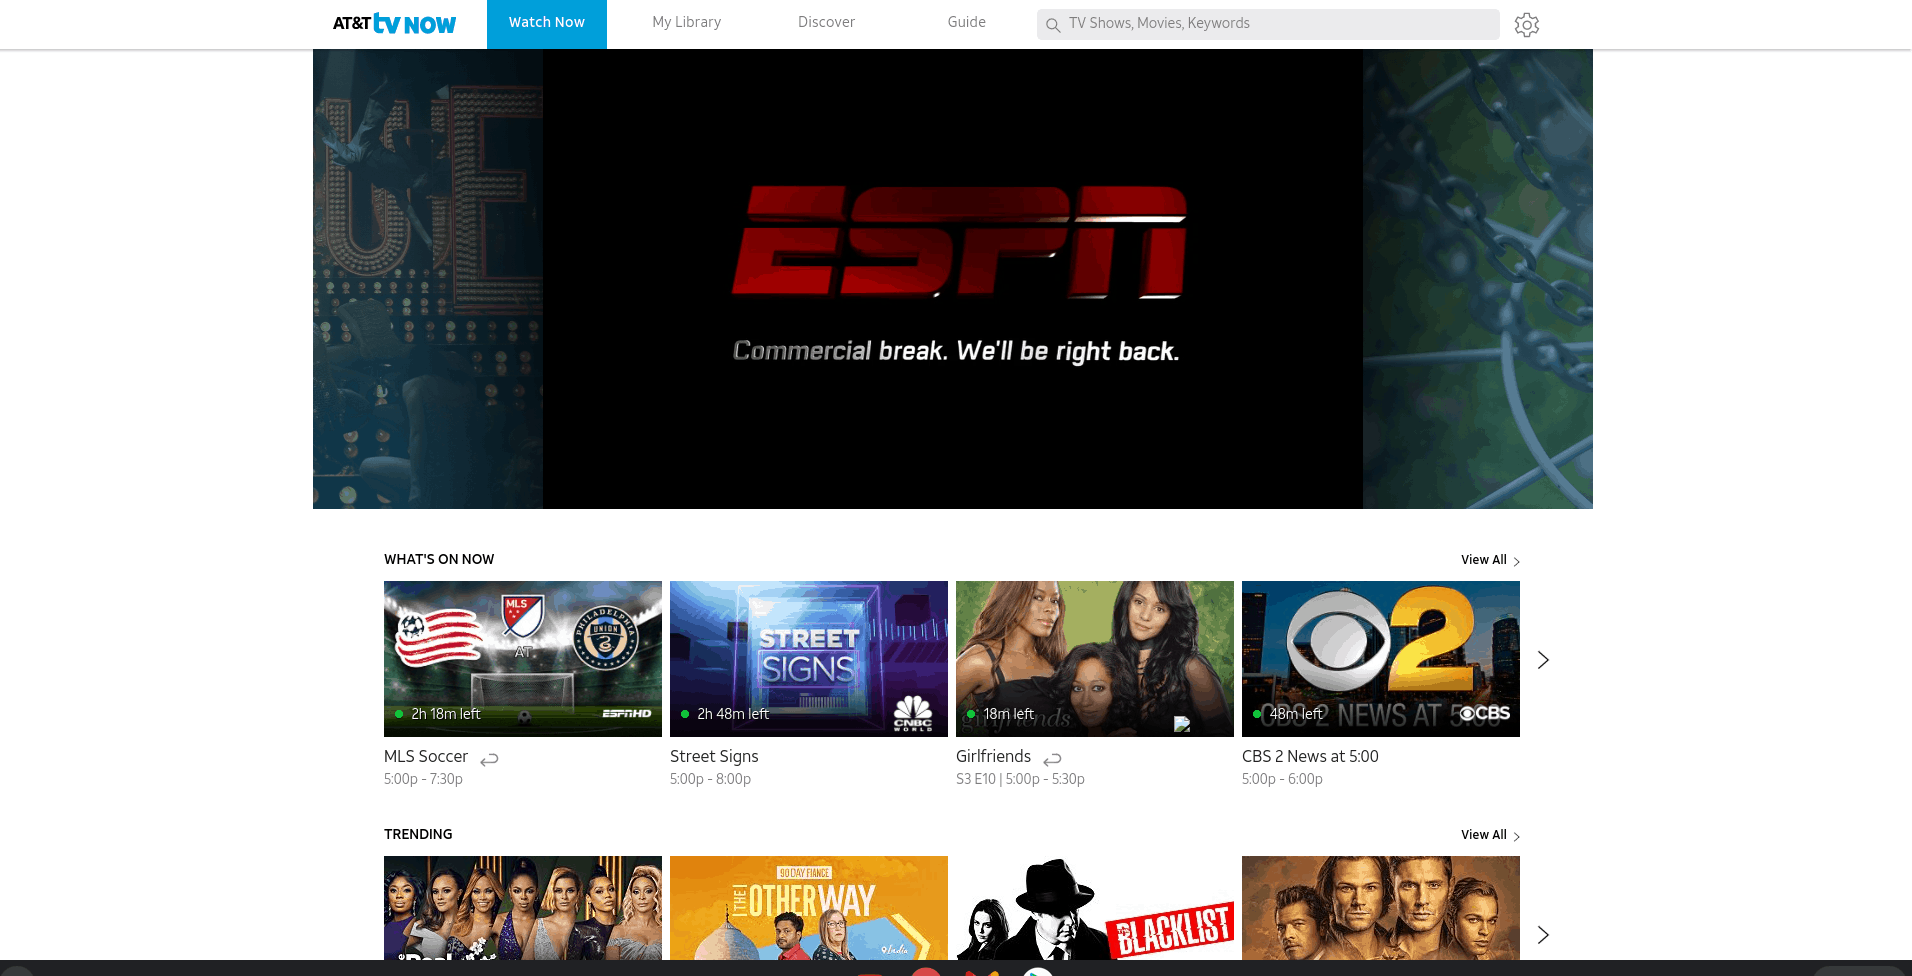 AT&T TV Now Homepage